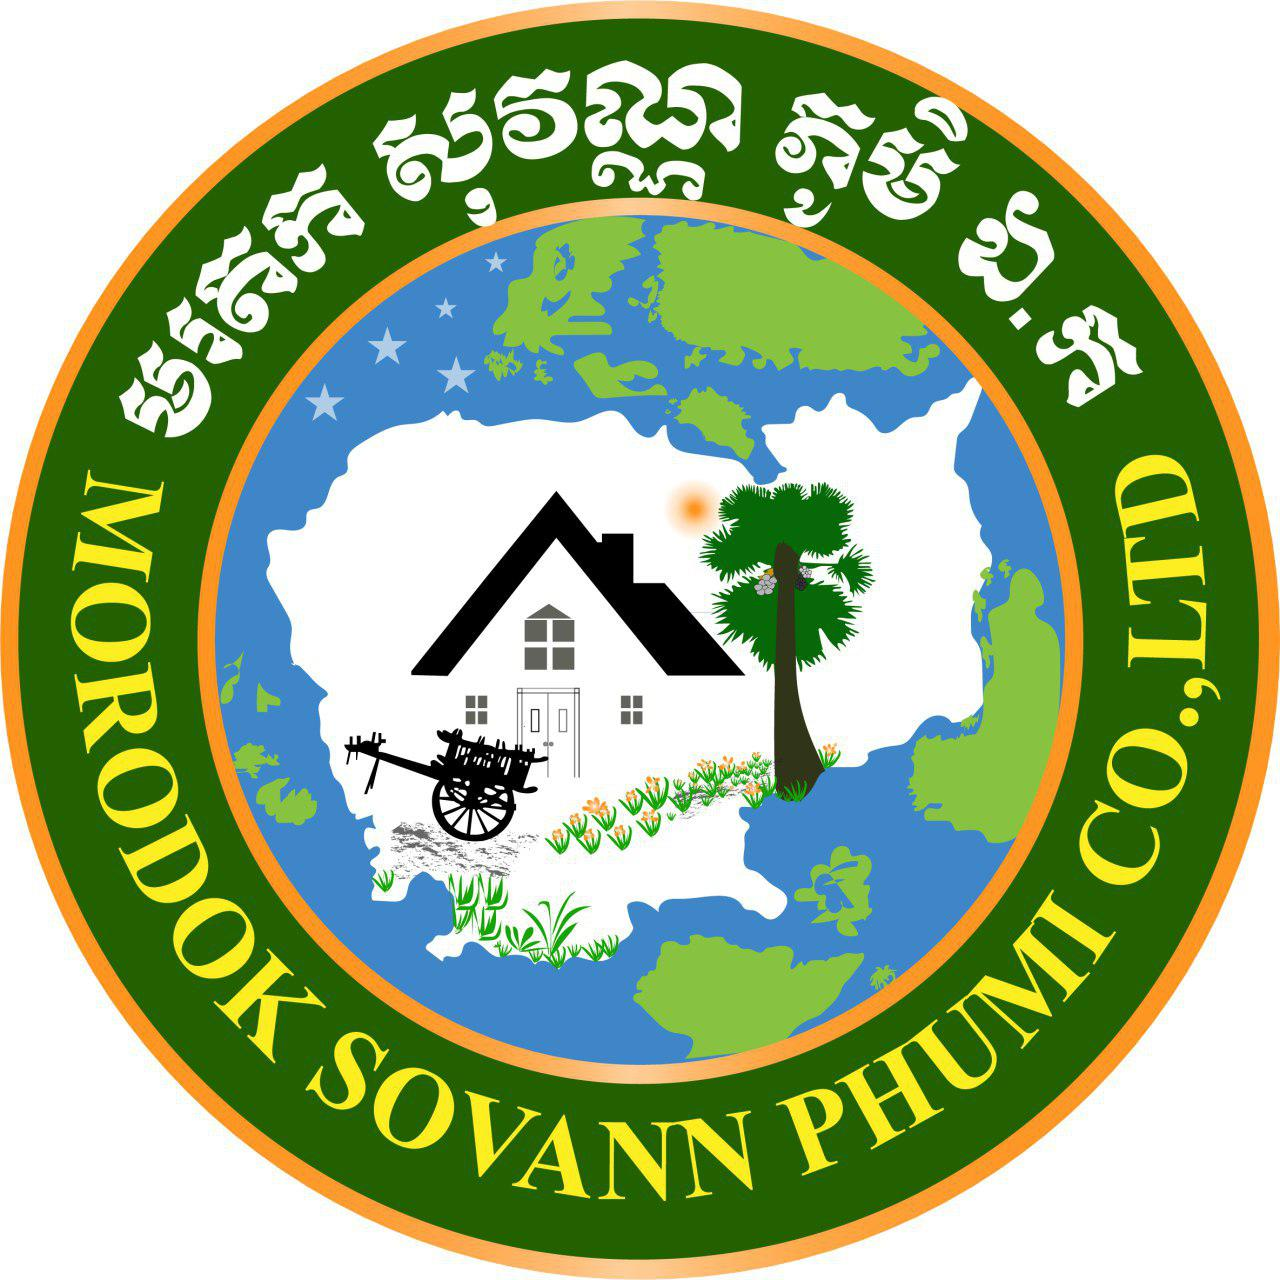 Morodok Sovann Phumi CO.,LTD